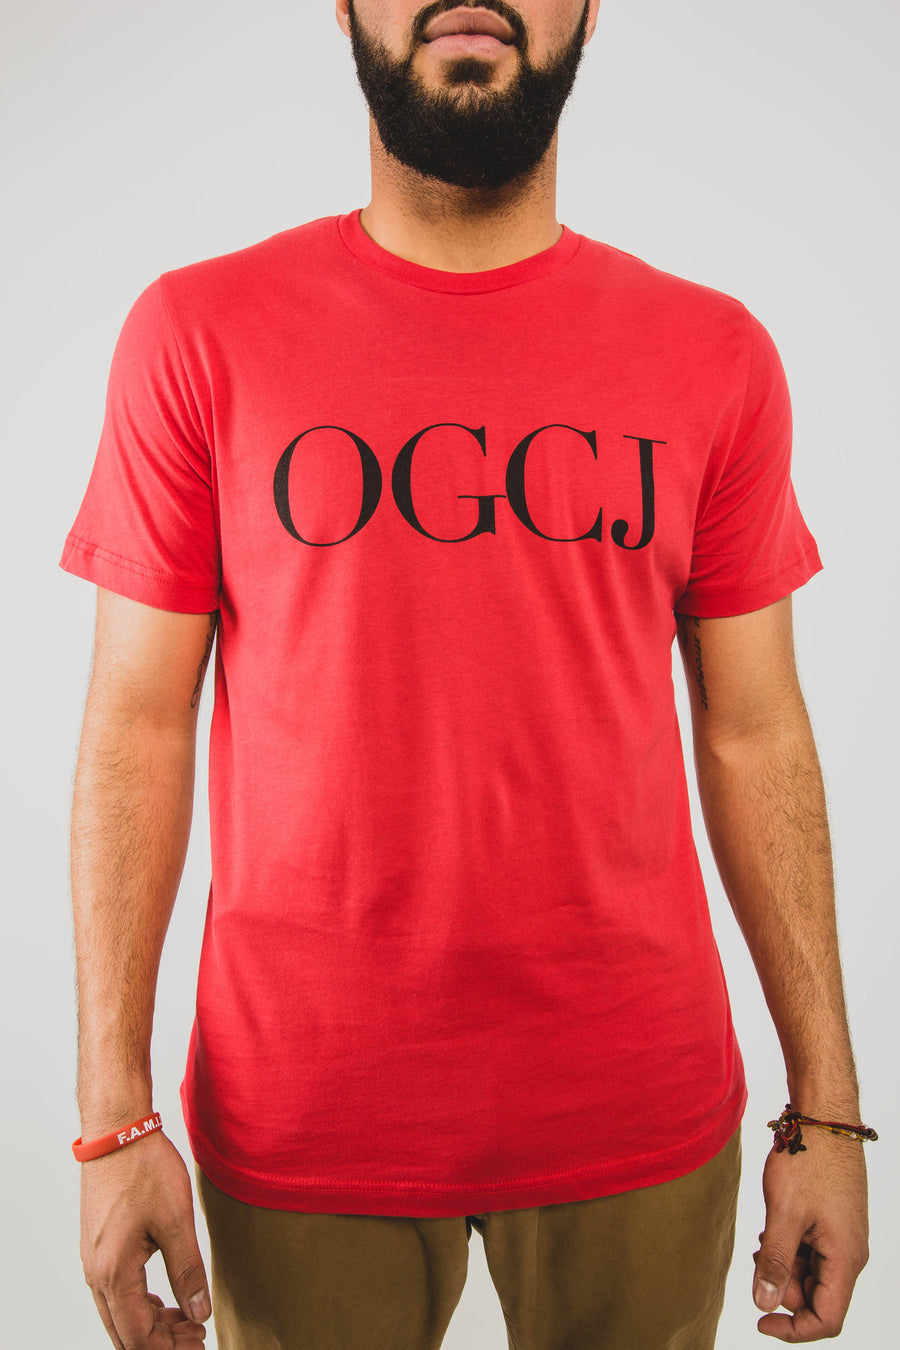 Classic OGCJ Tee - Red